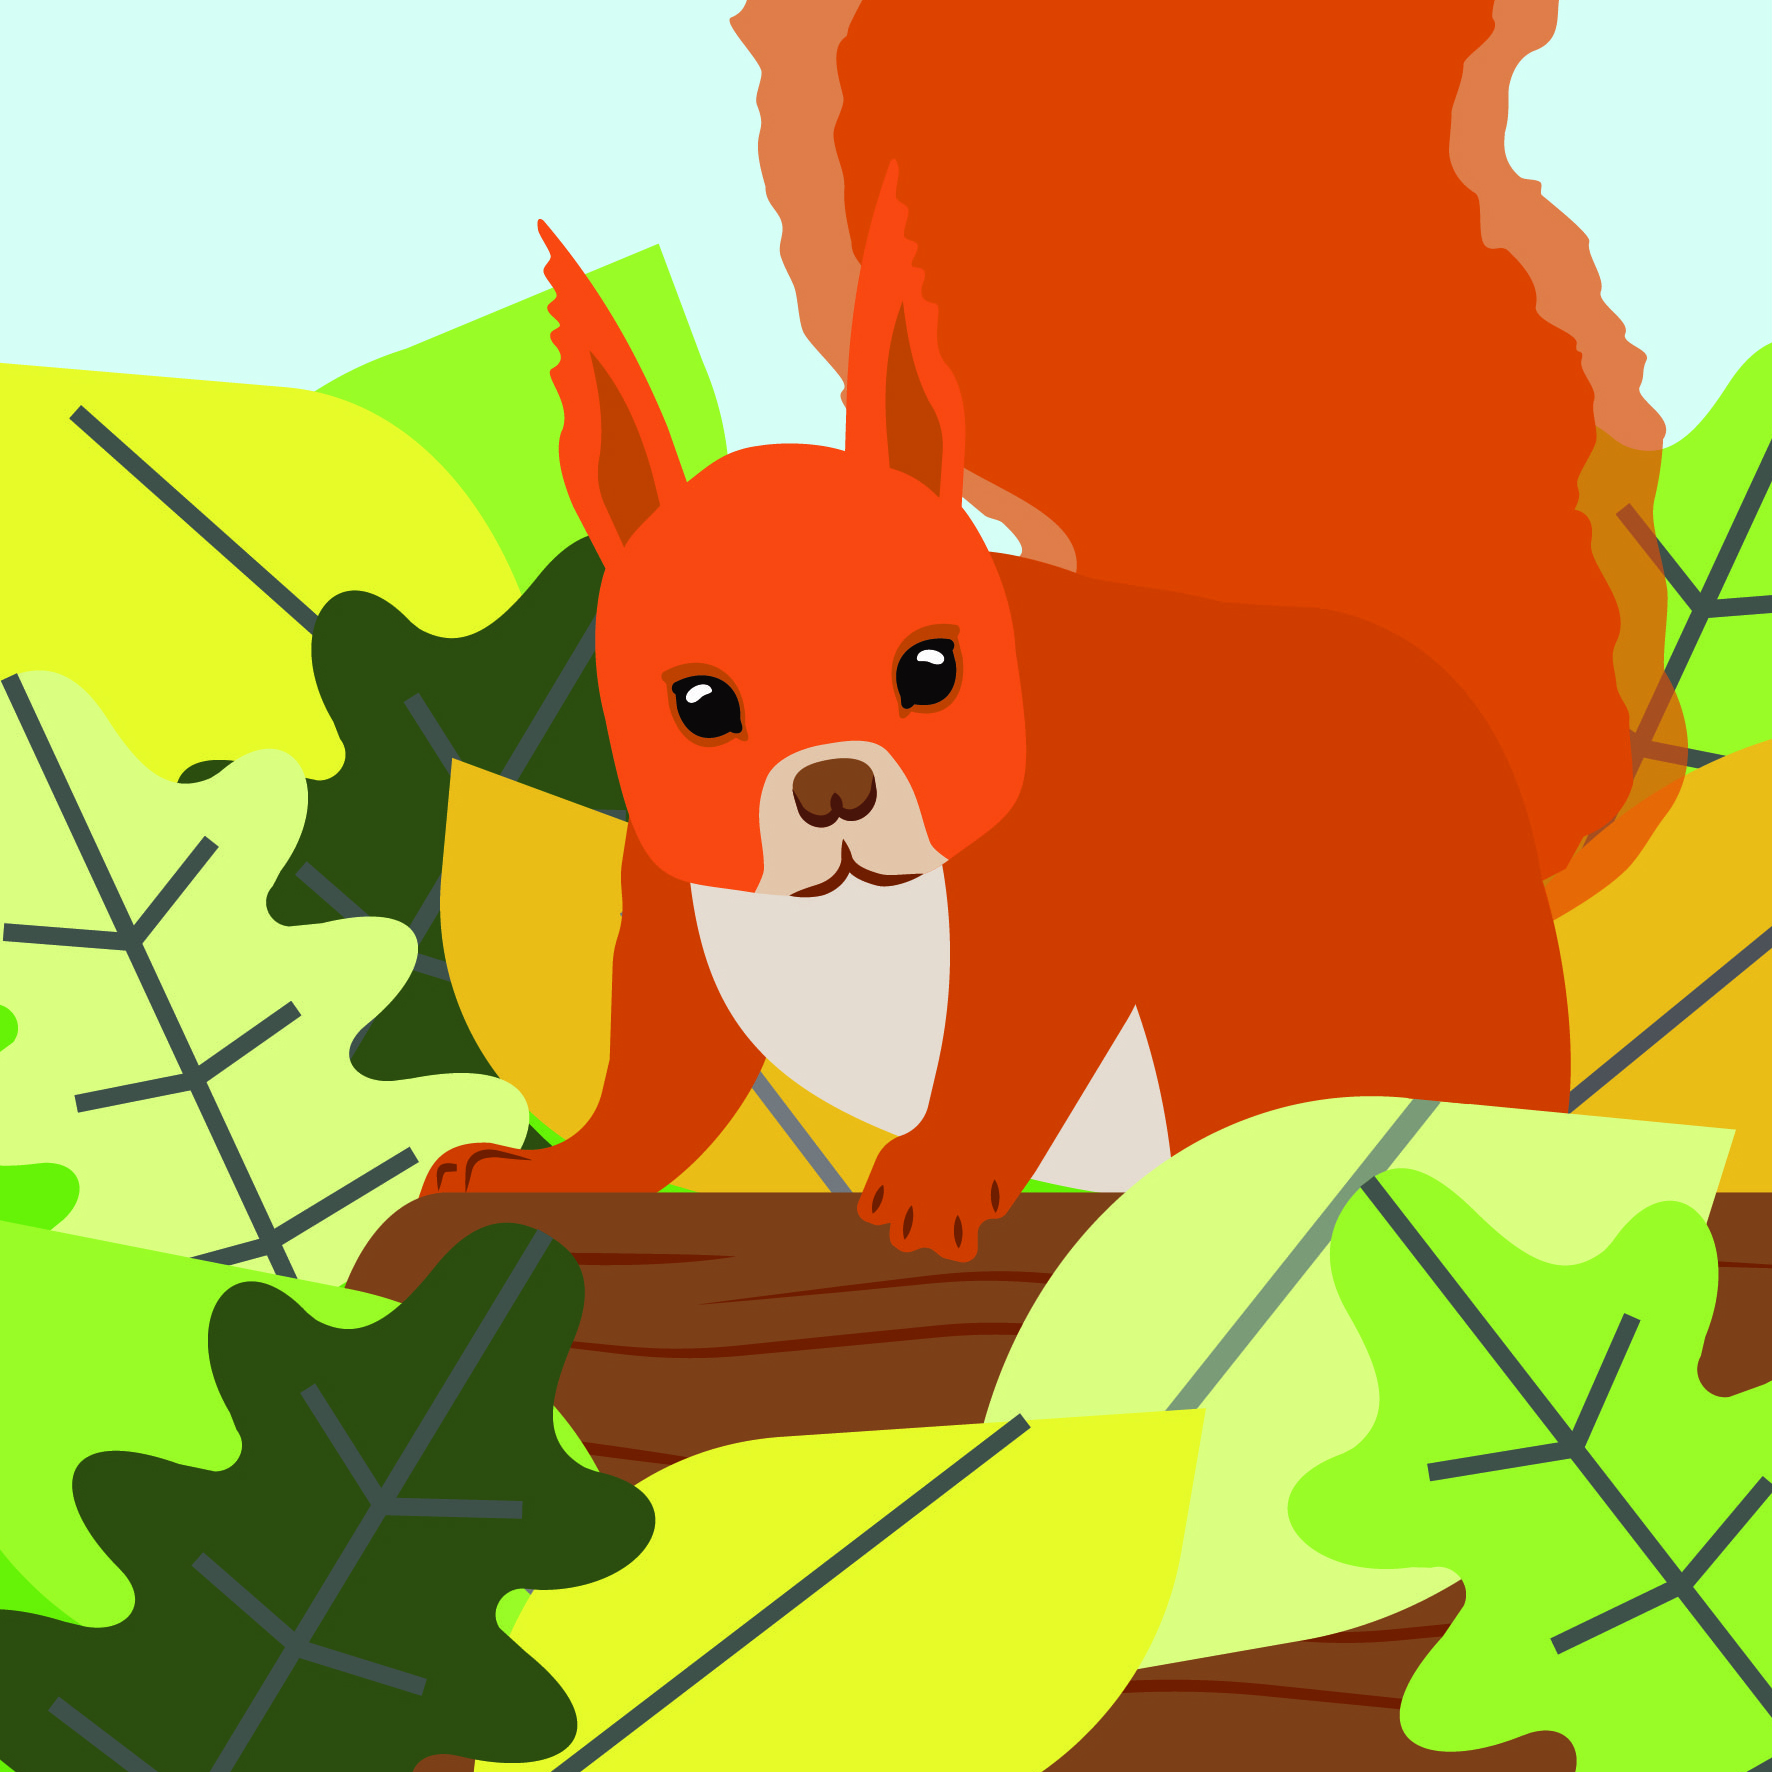 COUNTRYSIDE: SQUIRREL